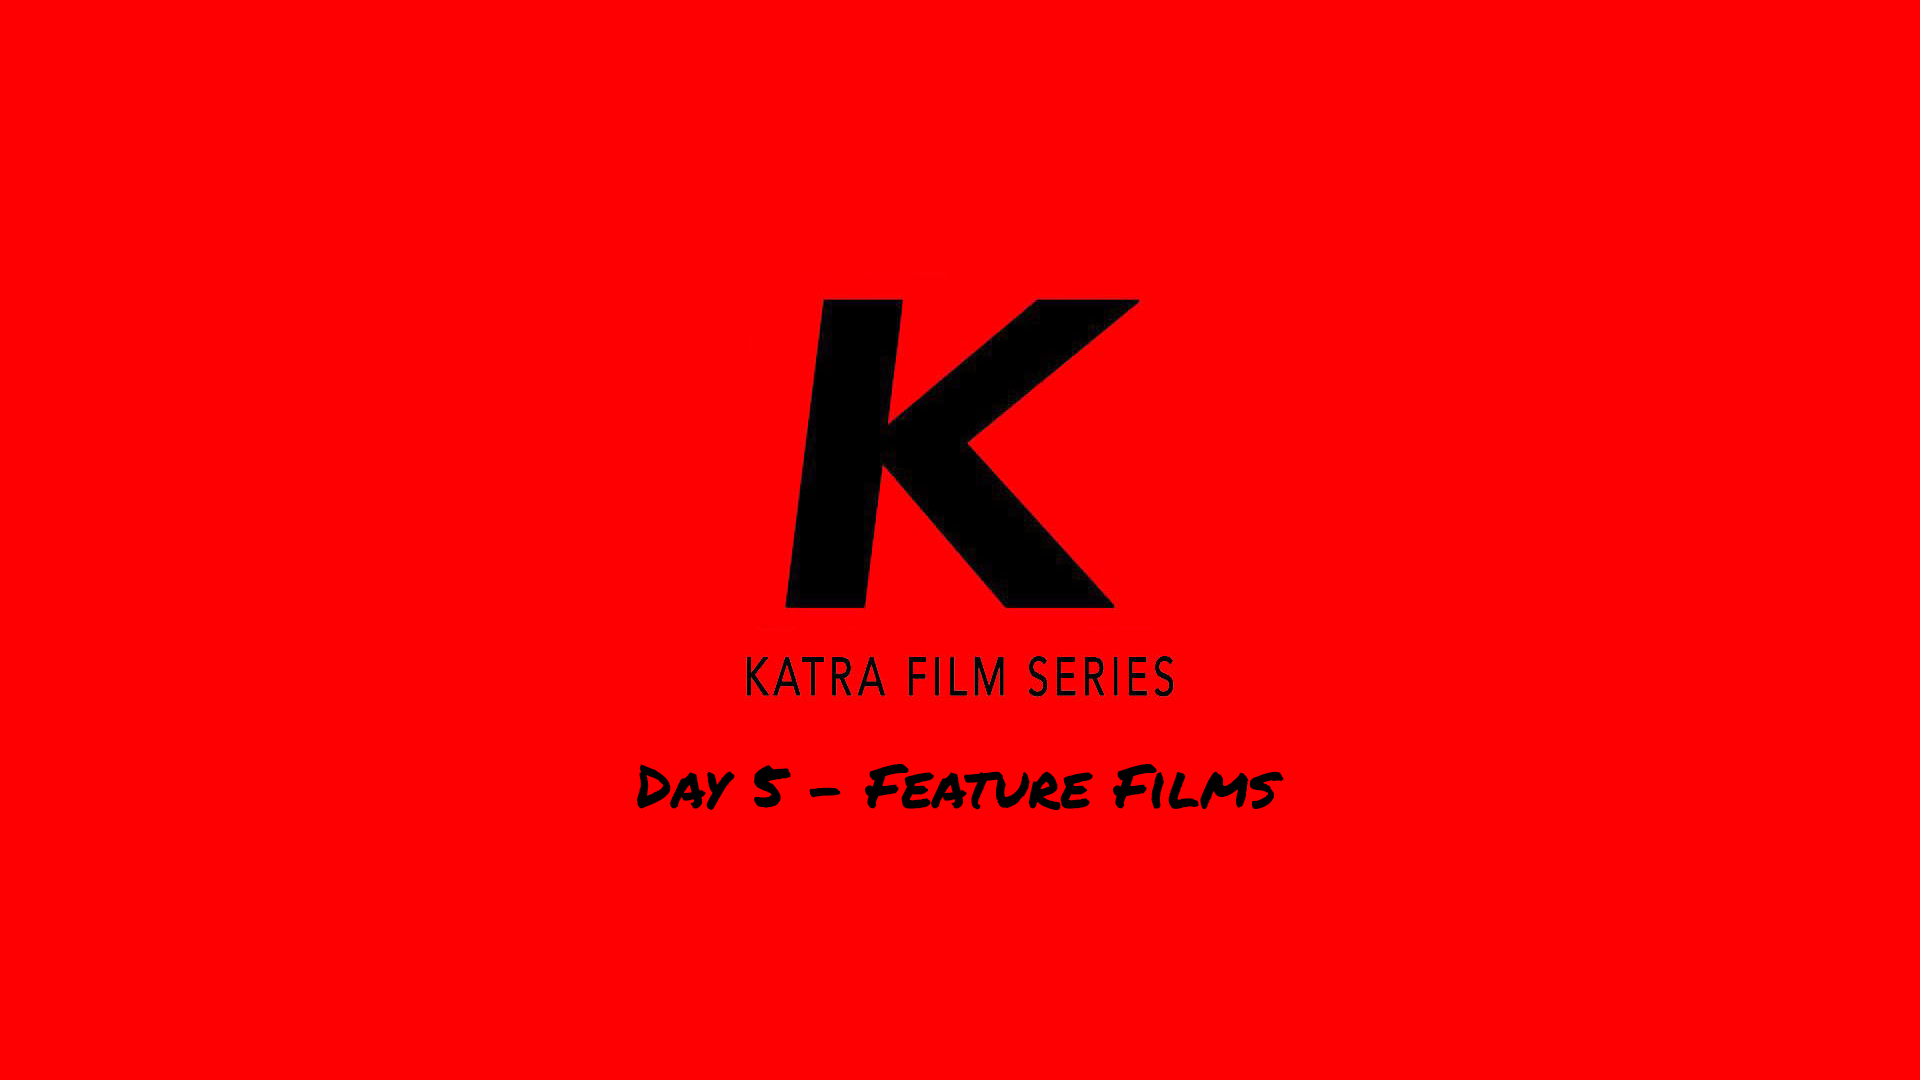 Day 5 Summer Edition of Katra Film Series 8/28